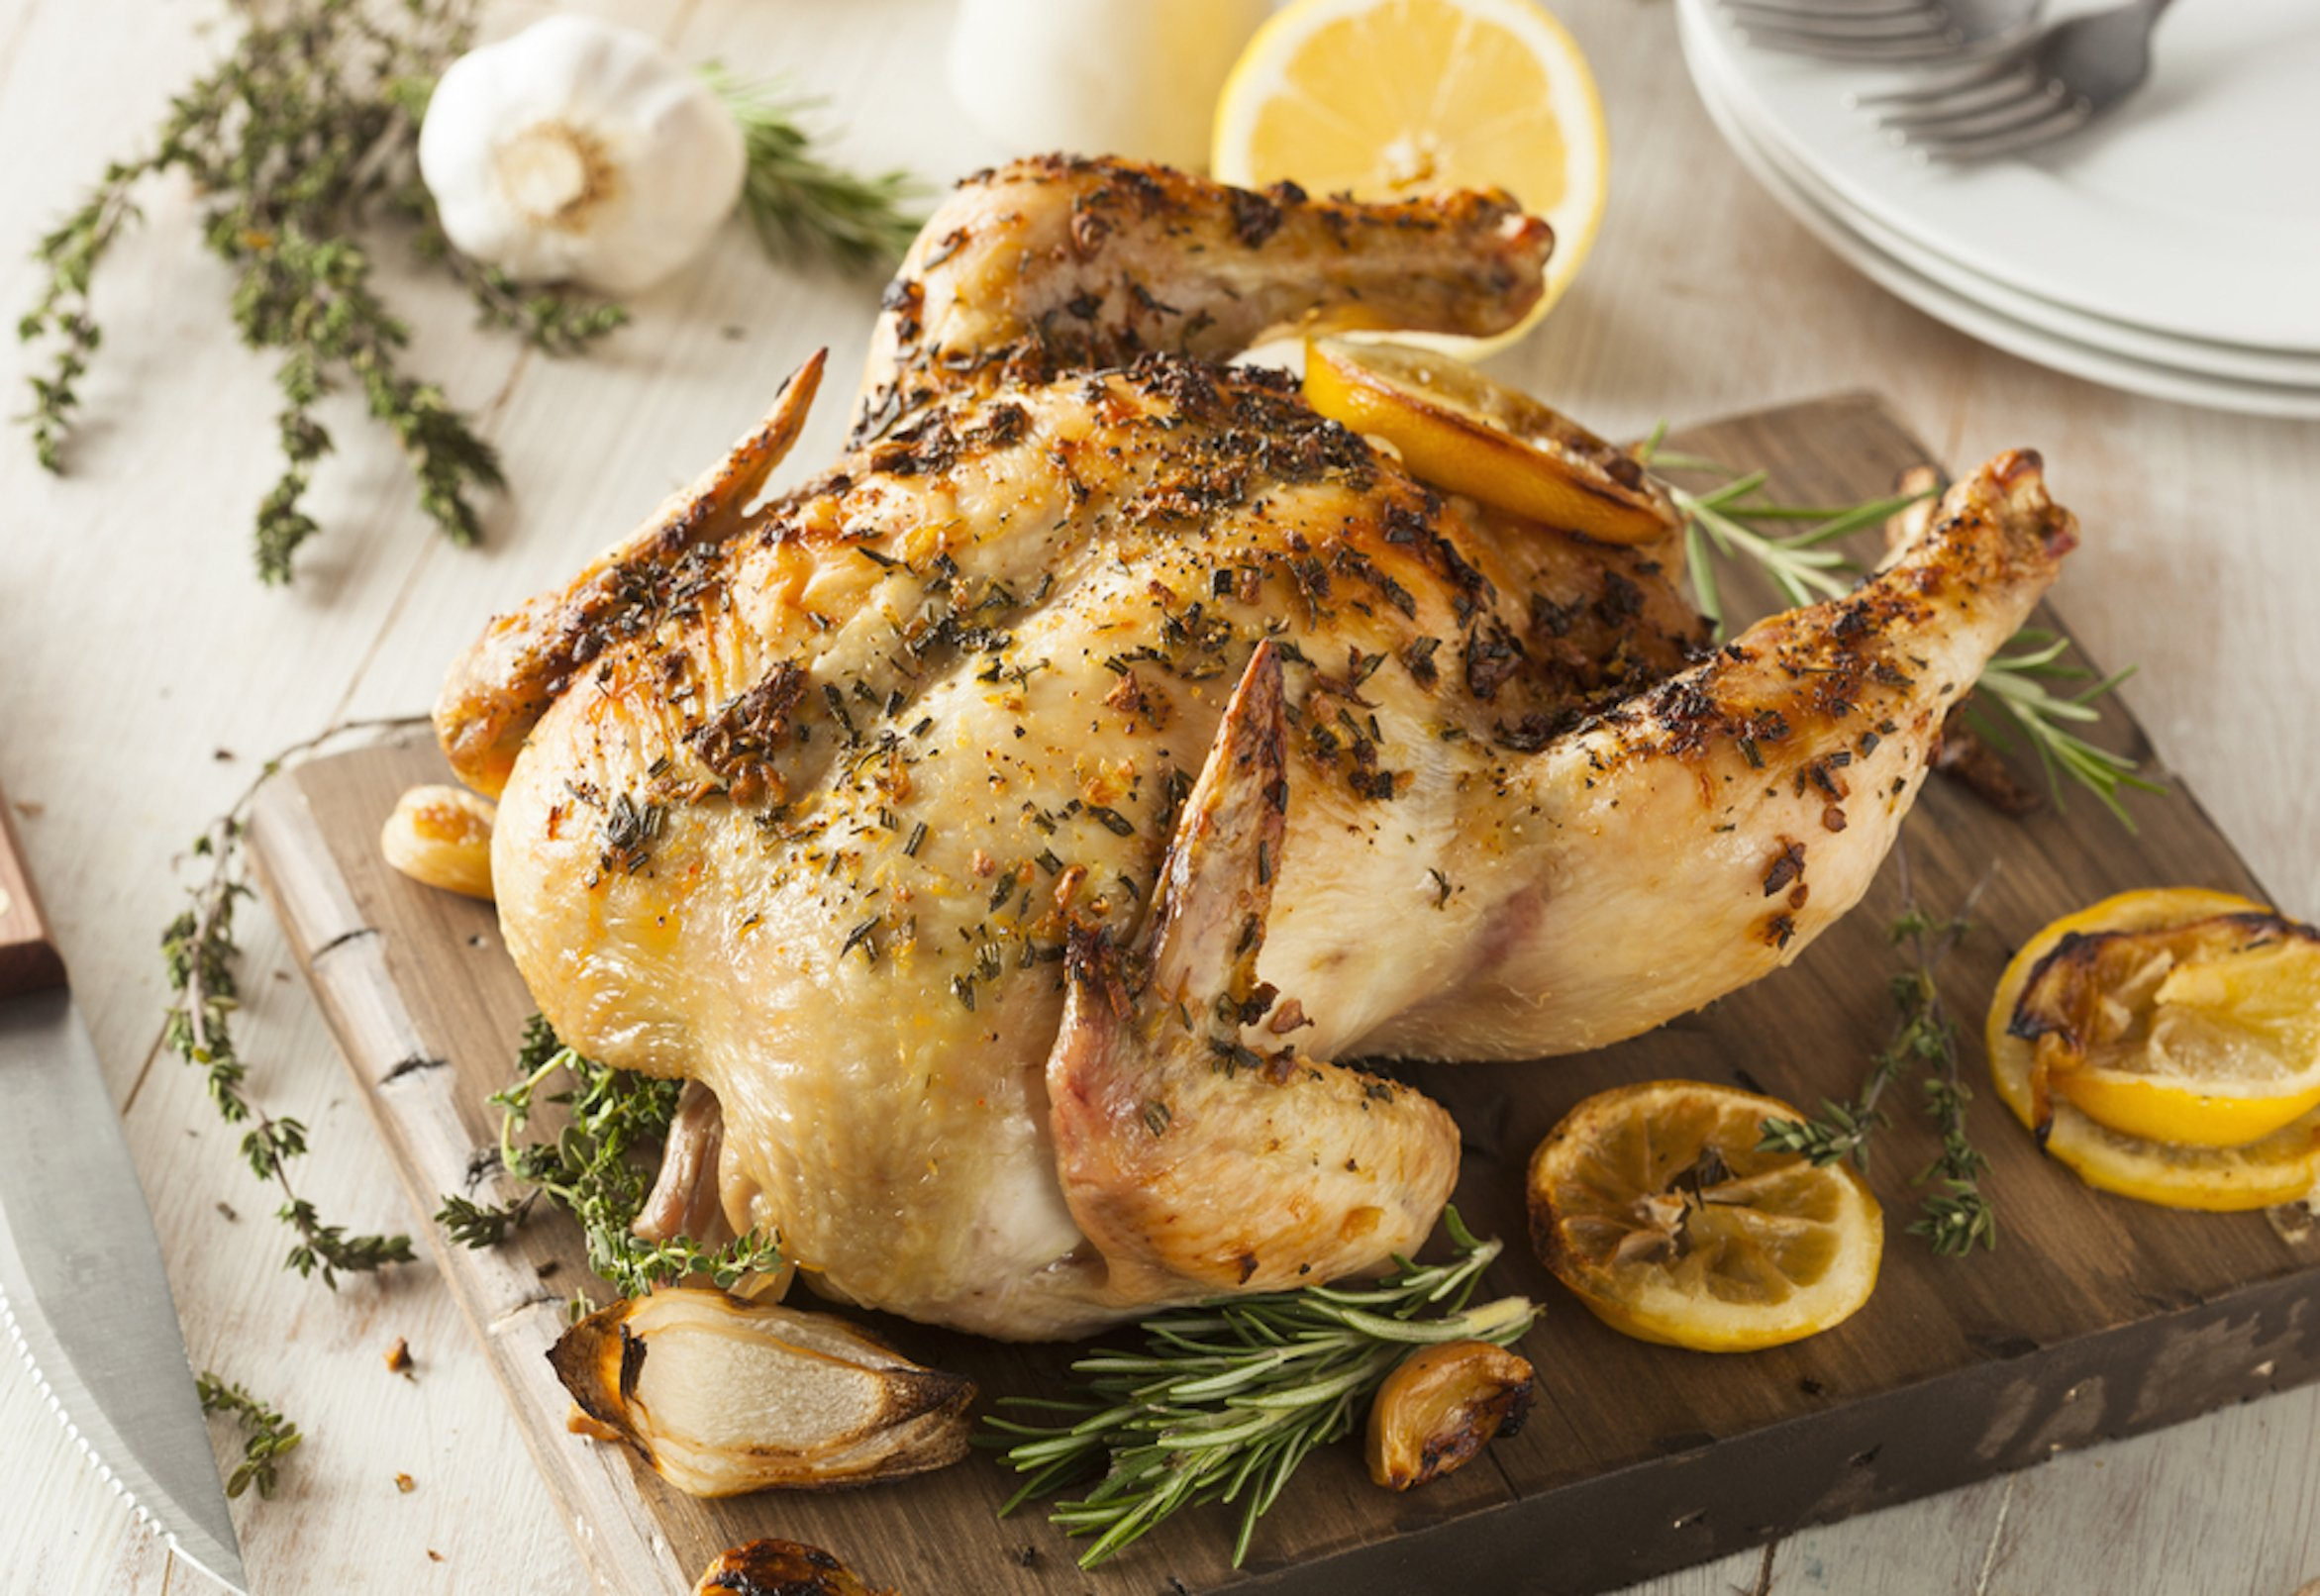 Video: Slow cooker roast lemon and garlic chicken - Mouths of Mums